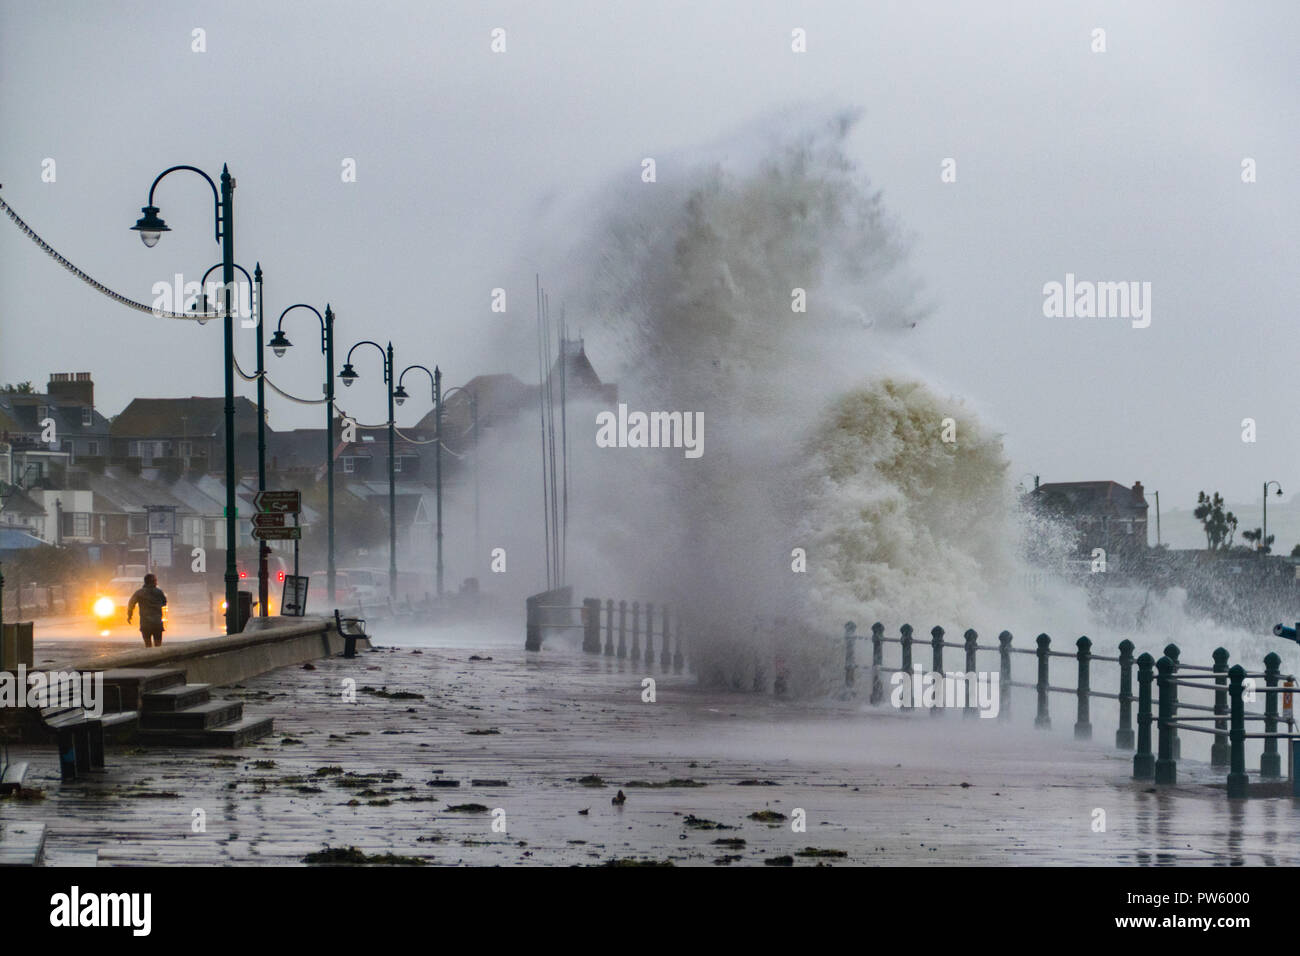 Penzance, Cornwall, UK. 13th October 2018. UK Weather. Storm Callum continues to batter Cornwall. Credit: Simon Maycock/Alamy Live News Stock Photo